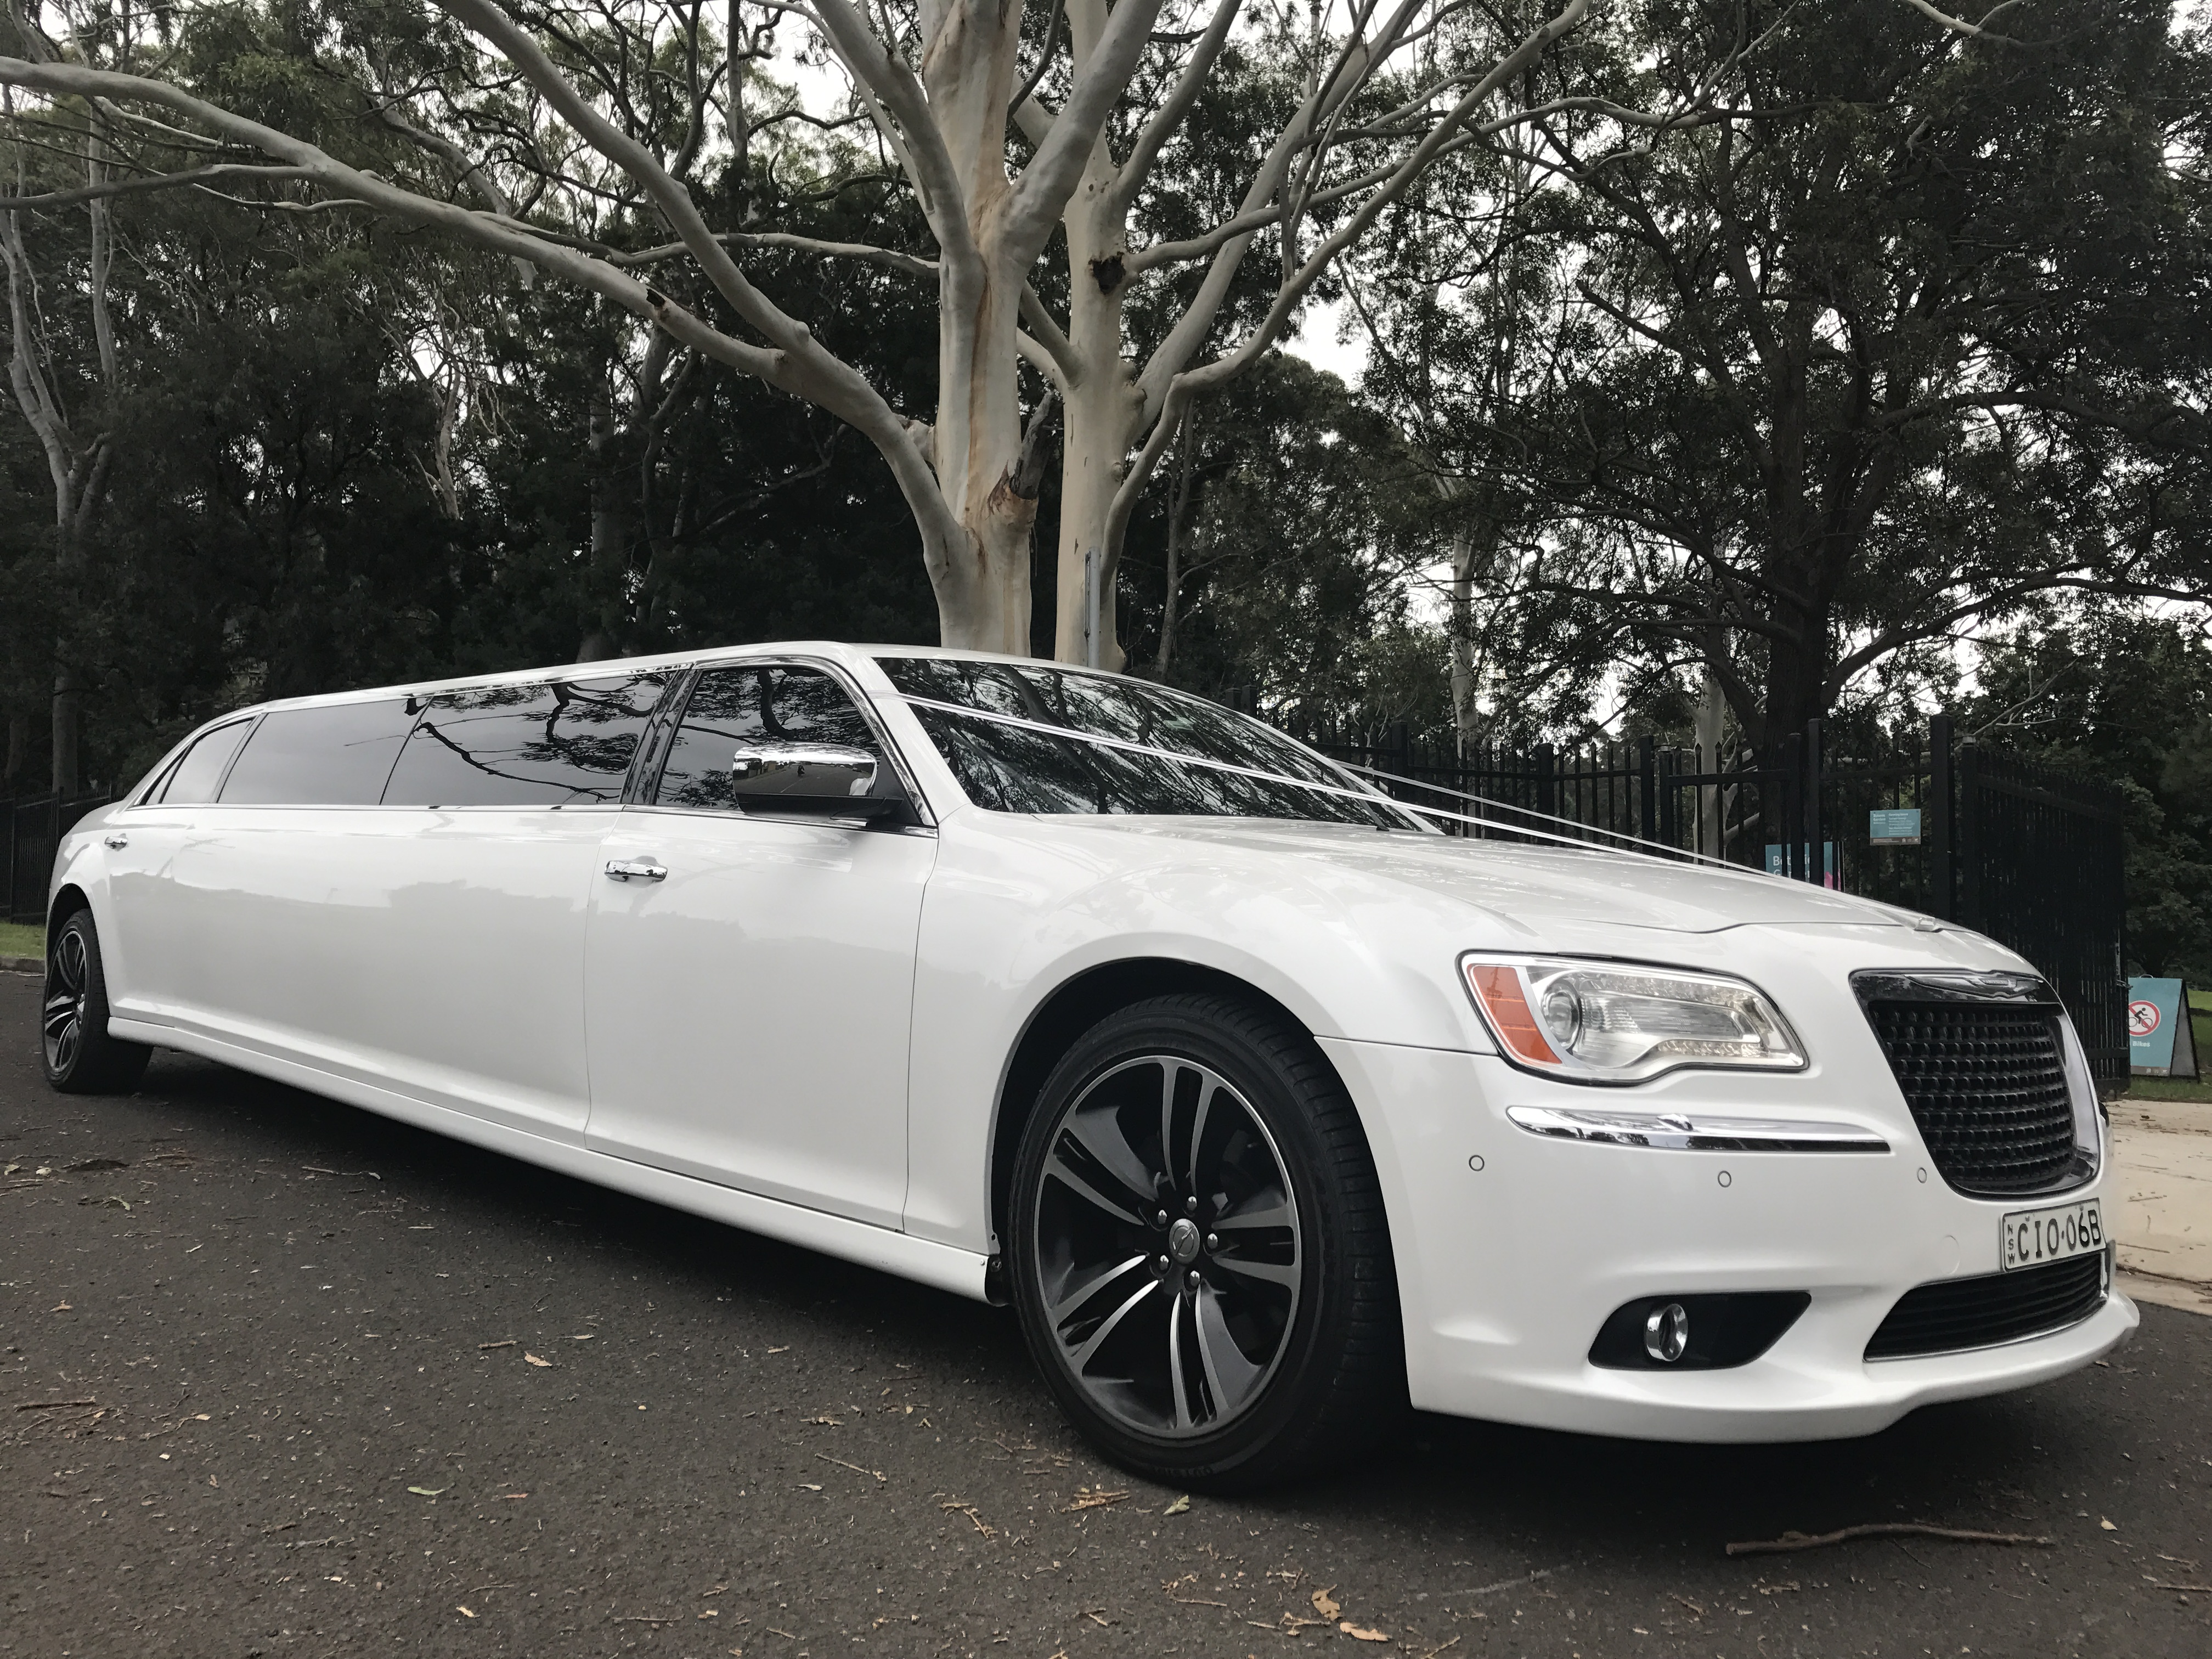 Limo Hire In Sydney Limo Hire In Wollongong - Cheap hummer hire sydney